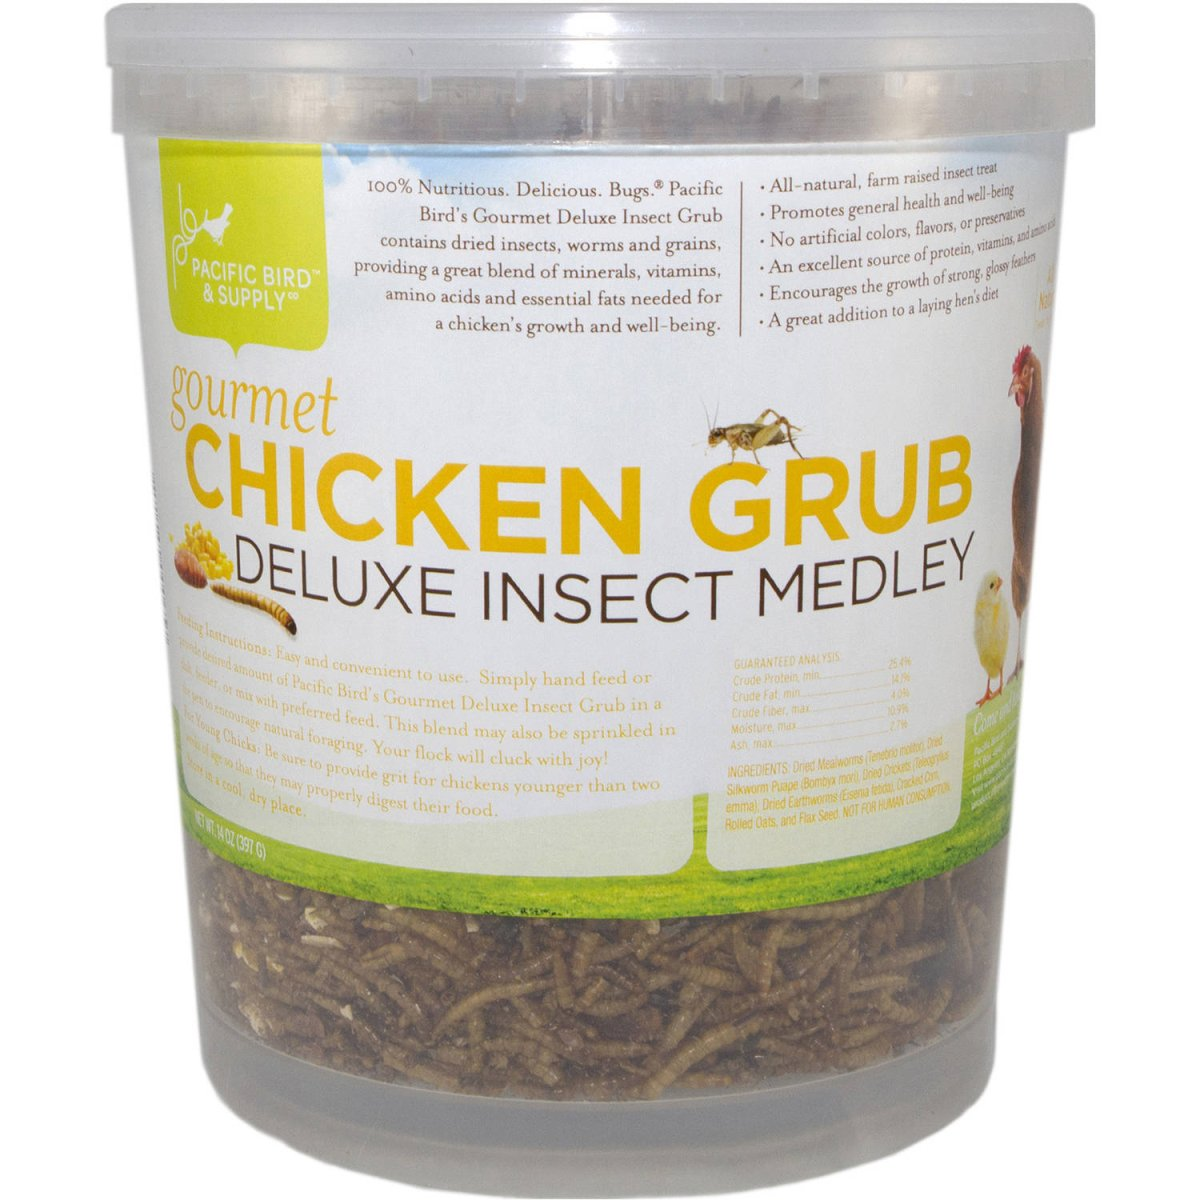 Pacific Bird & Supply PB-0065 14 oz Gourmet Chicken Grub Deluxe Insect Medley